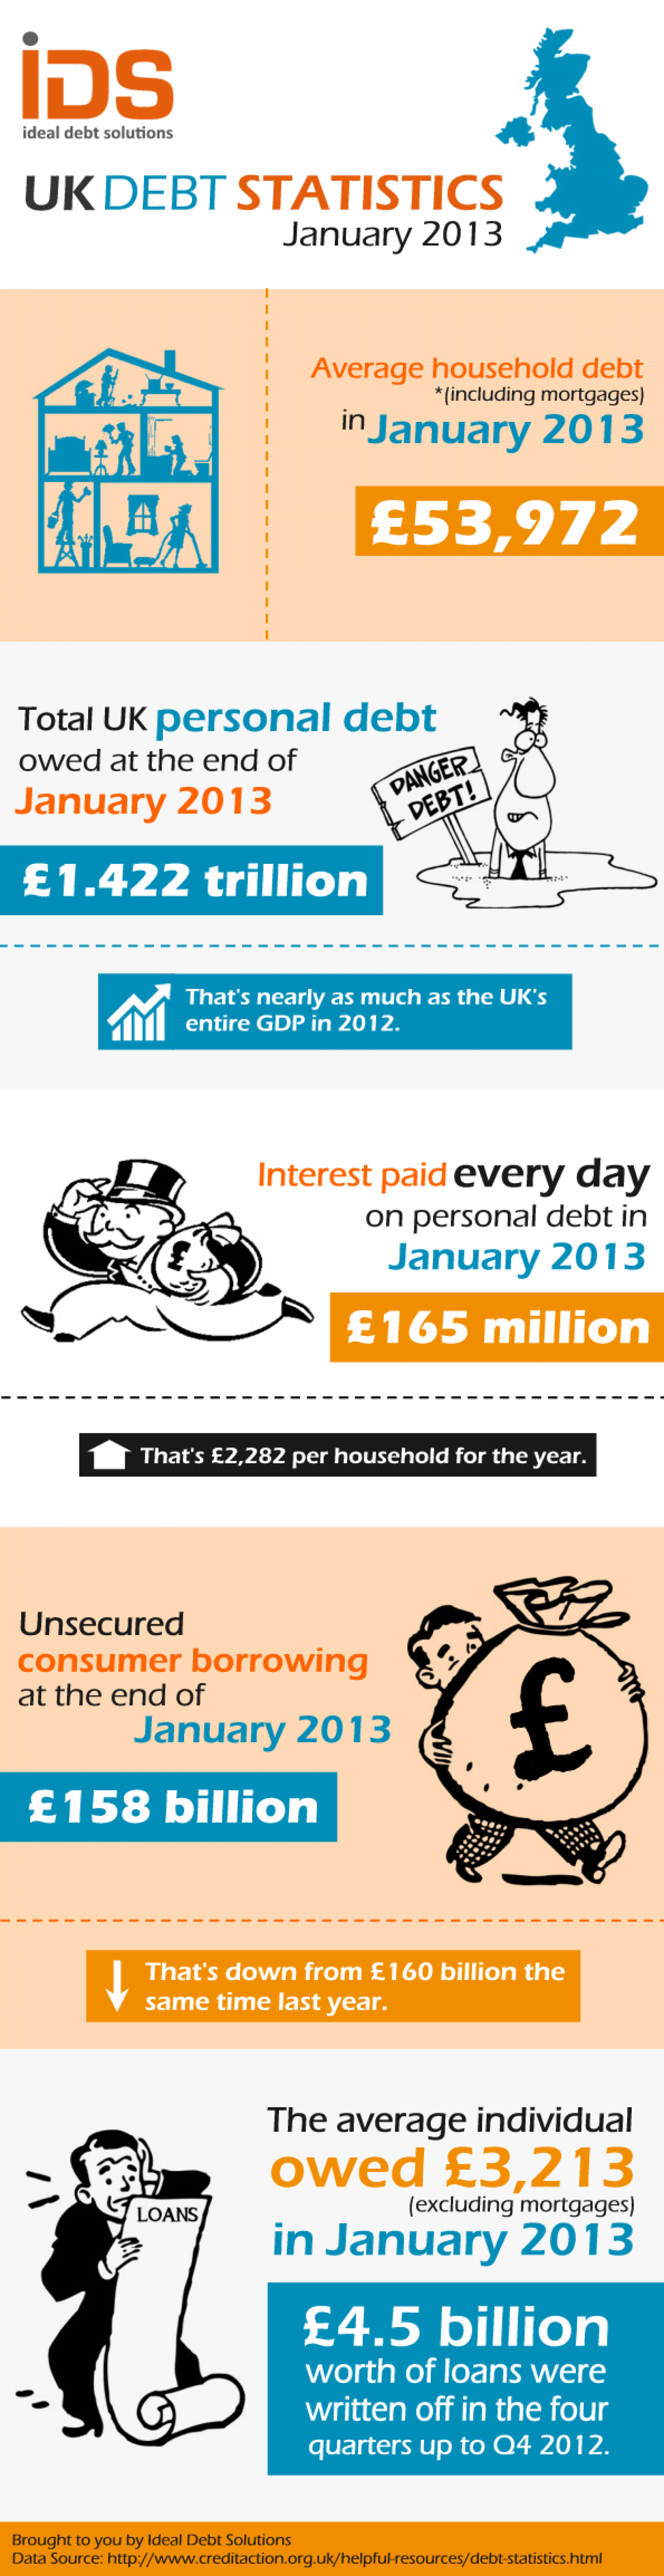 UK Debt Statistics - January 2013 Infographic